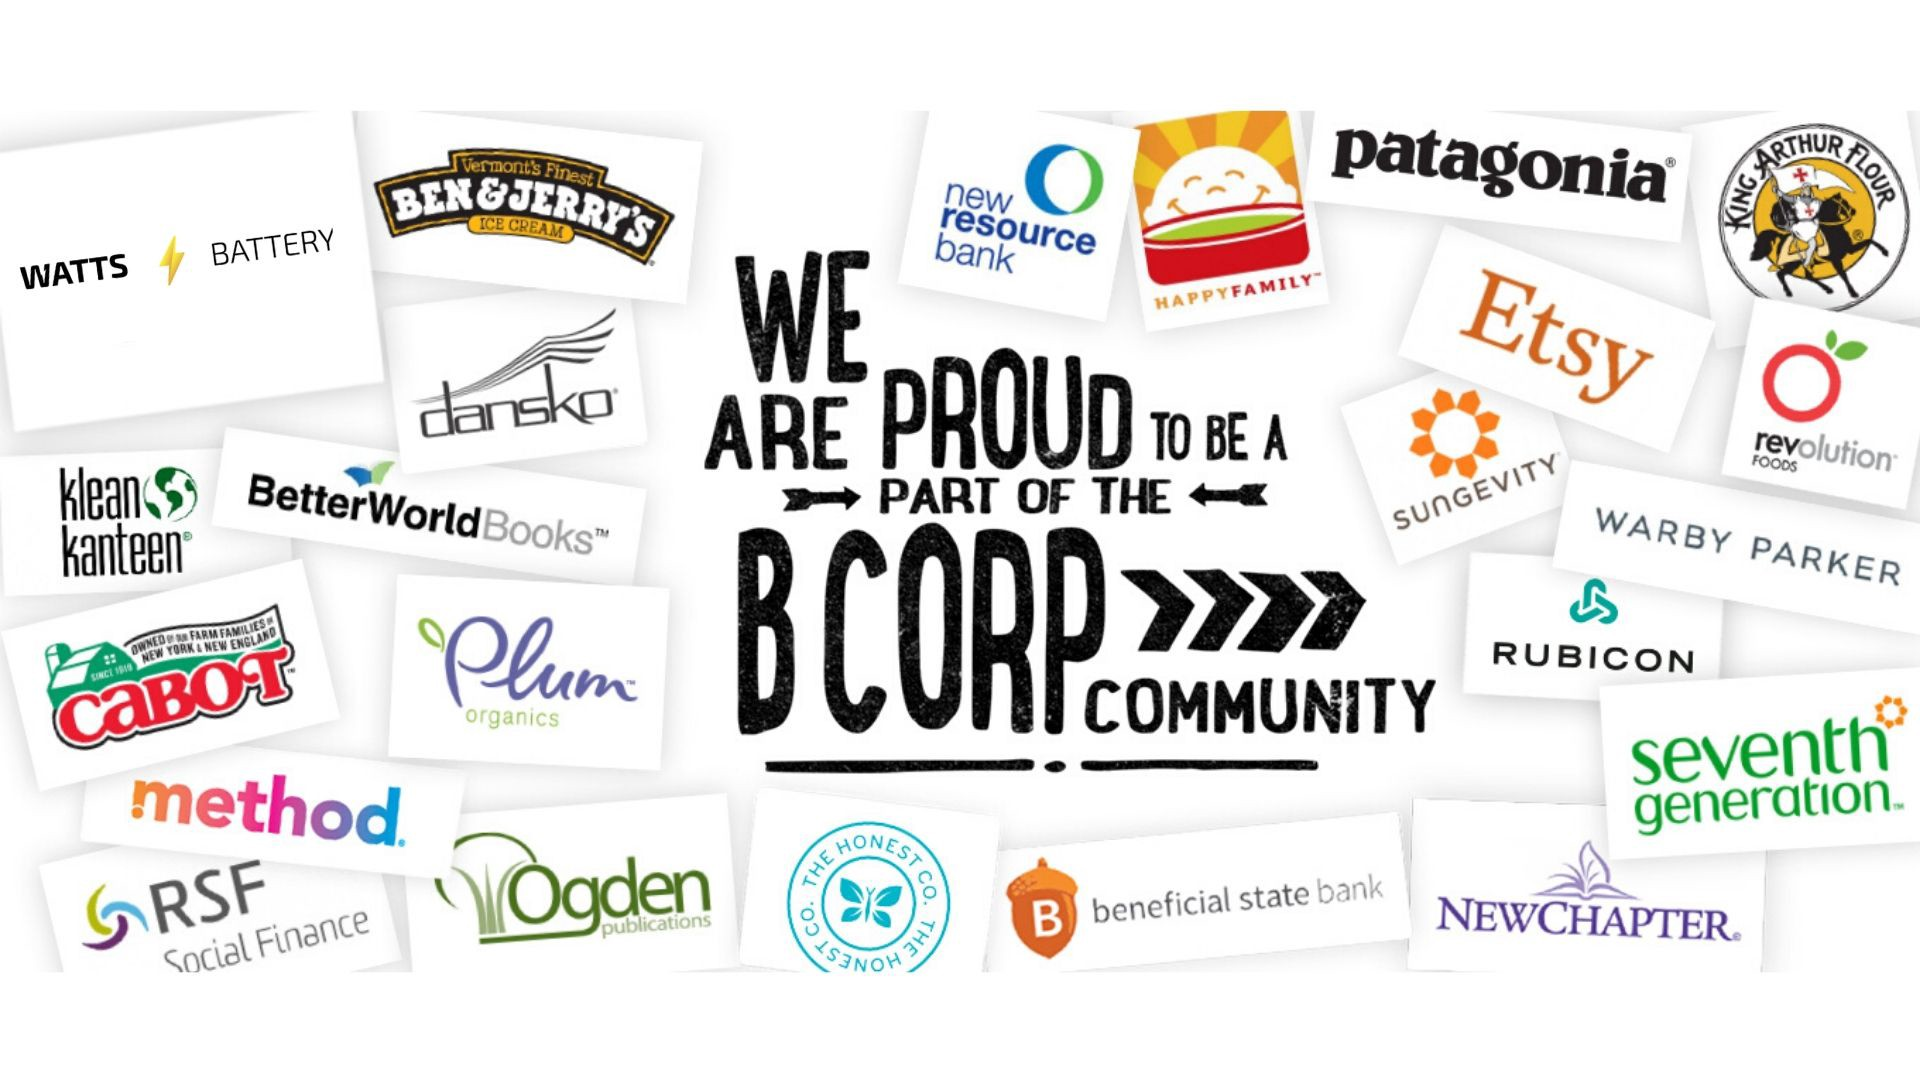 WATTS Battery — We Are a B Corp!